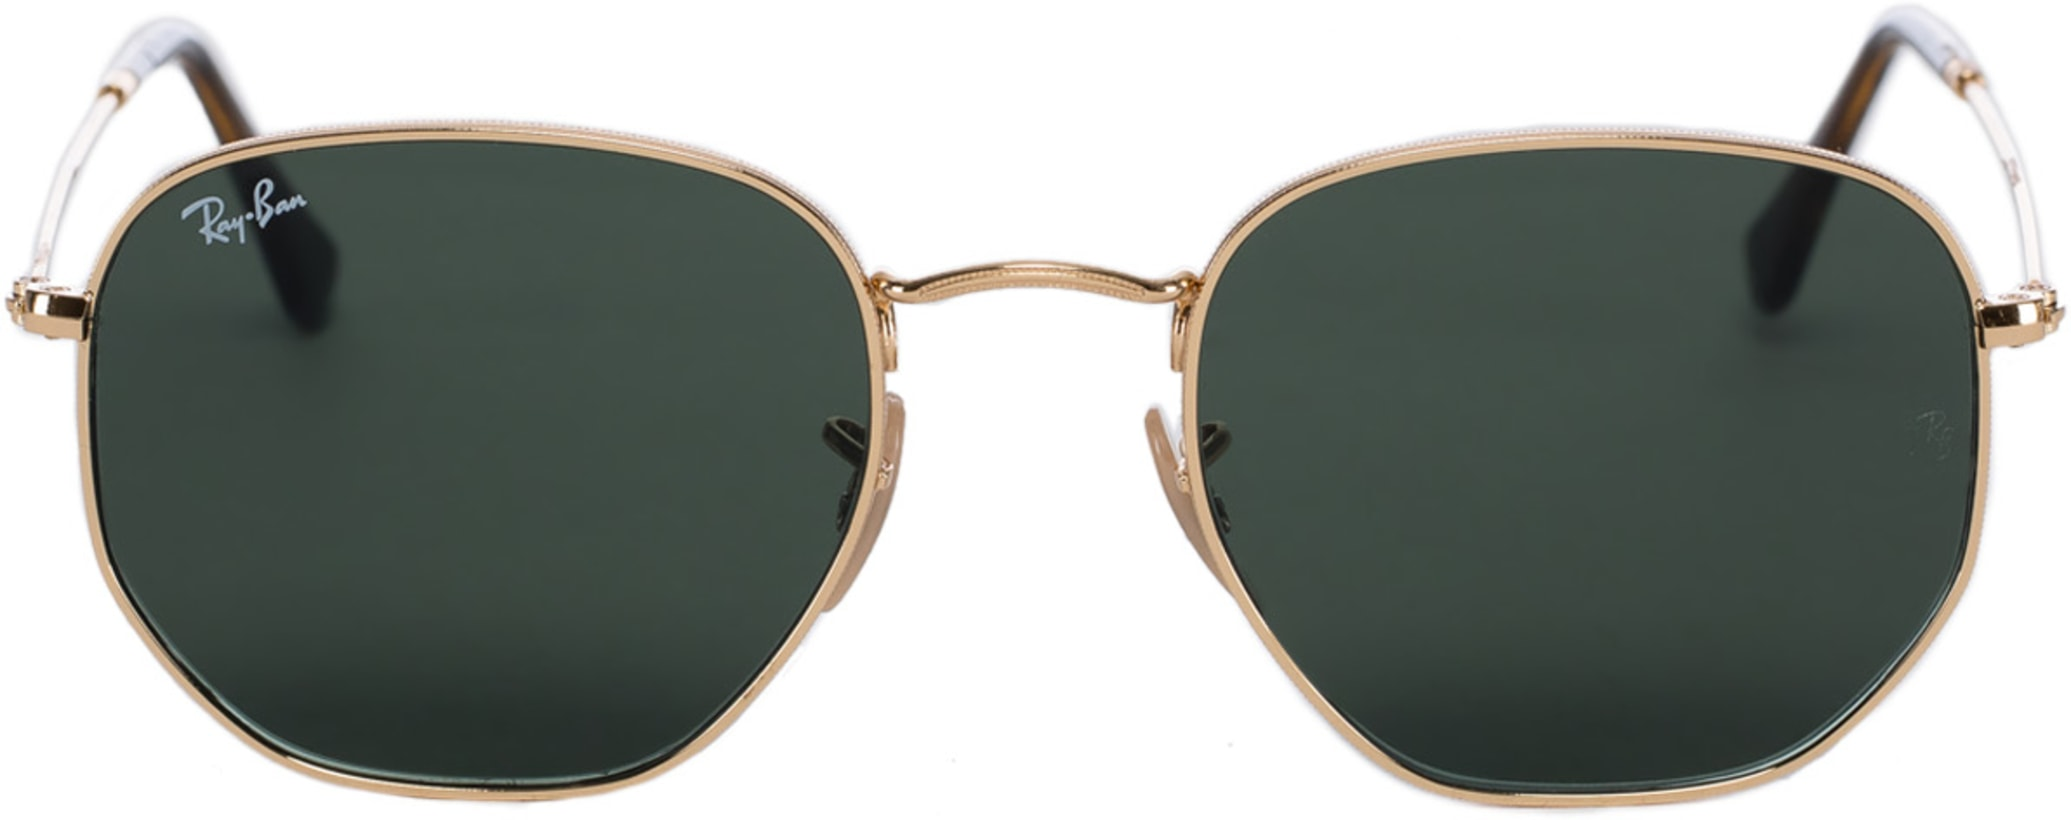 e98afde378e Ray-Ban  Hexagonal Flat Lens Sunglasses - Gold Green Classic G-15 ...